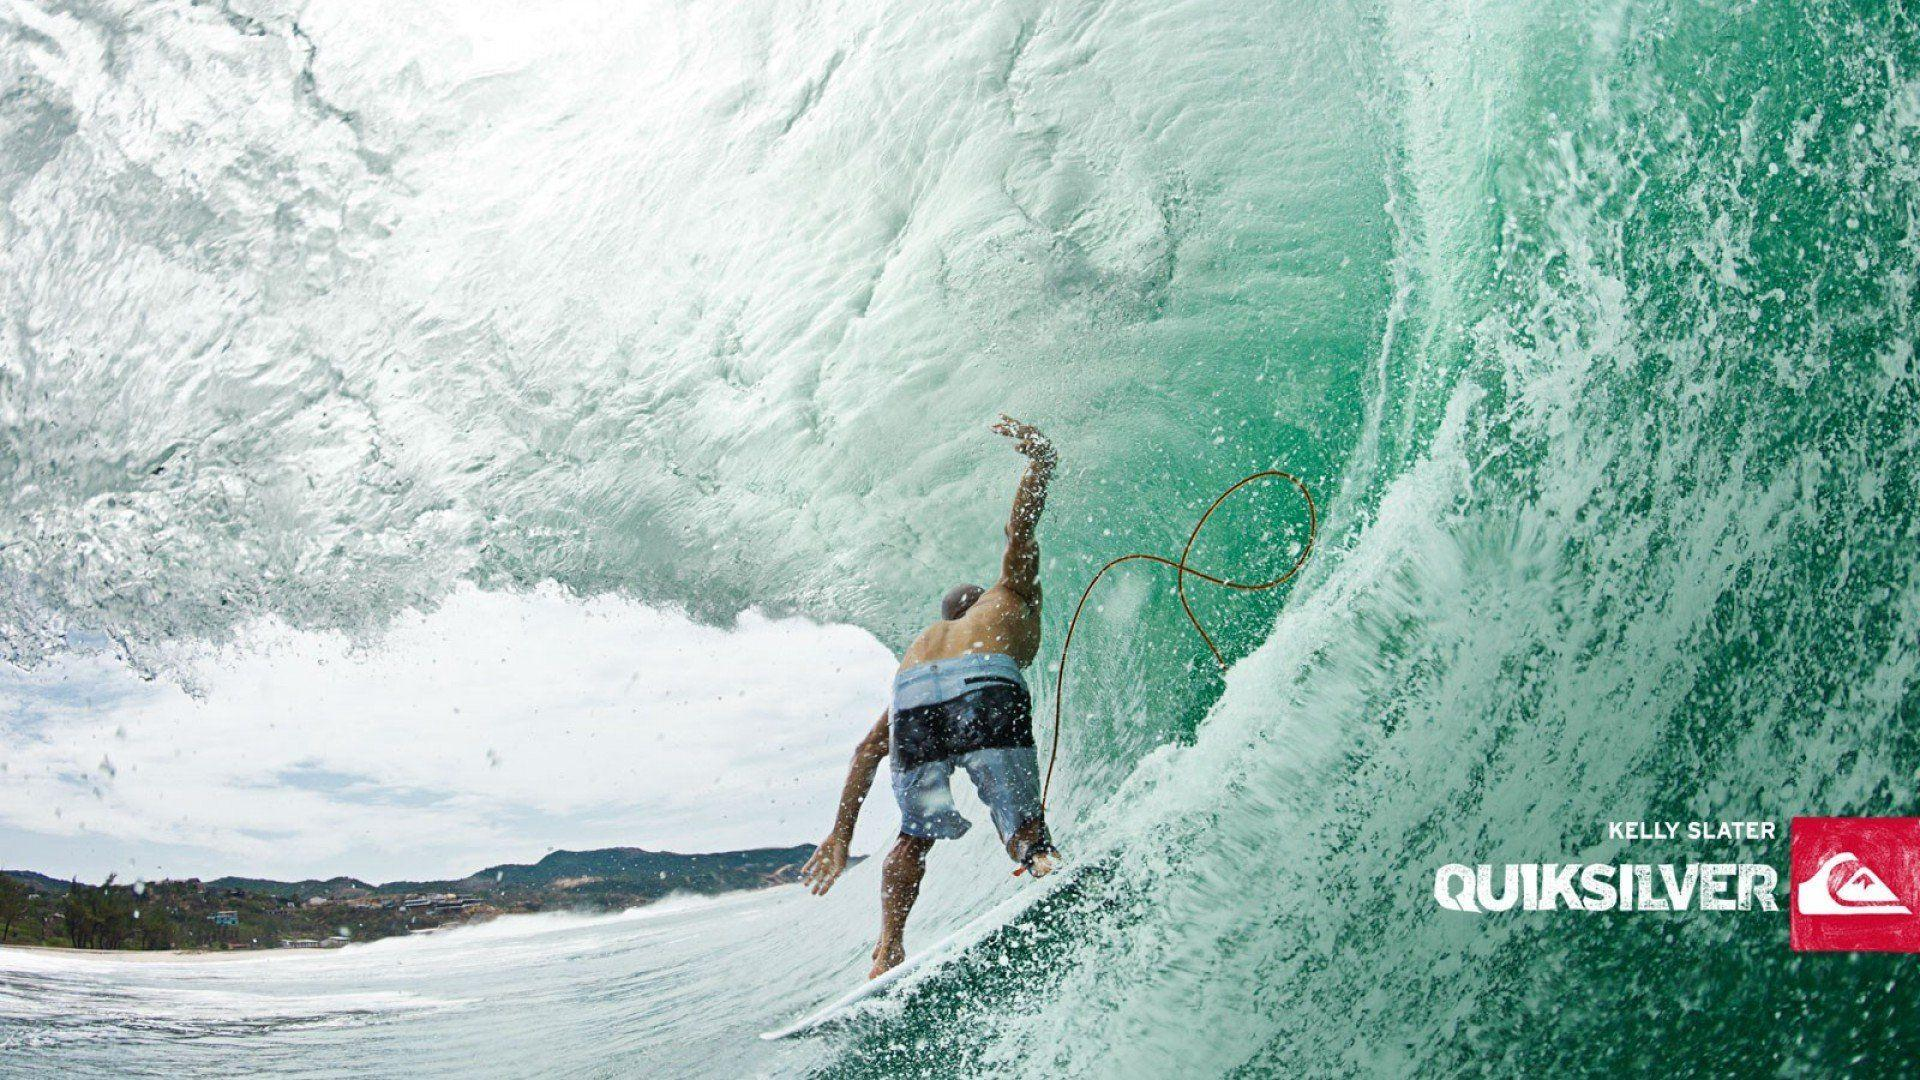 quiksilver surf wallpaper hd - photo #8